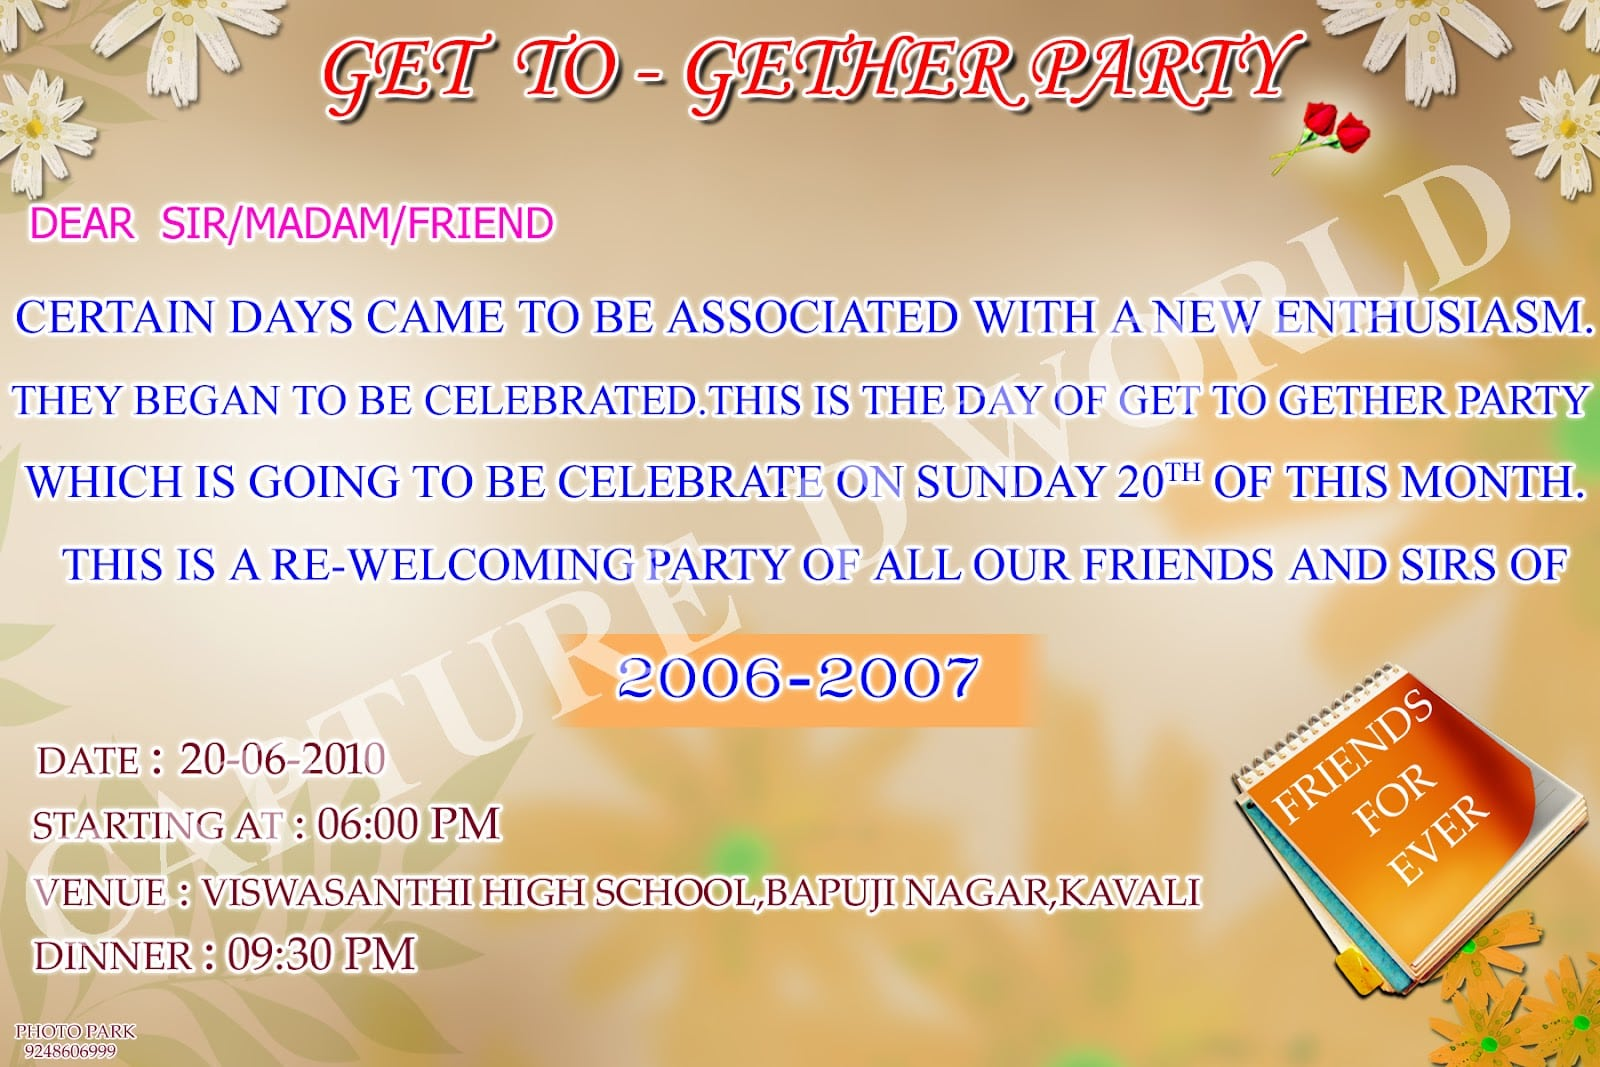 Invitation Card For Farewell Party In College Luxury